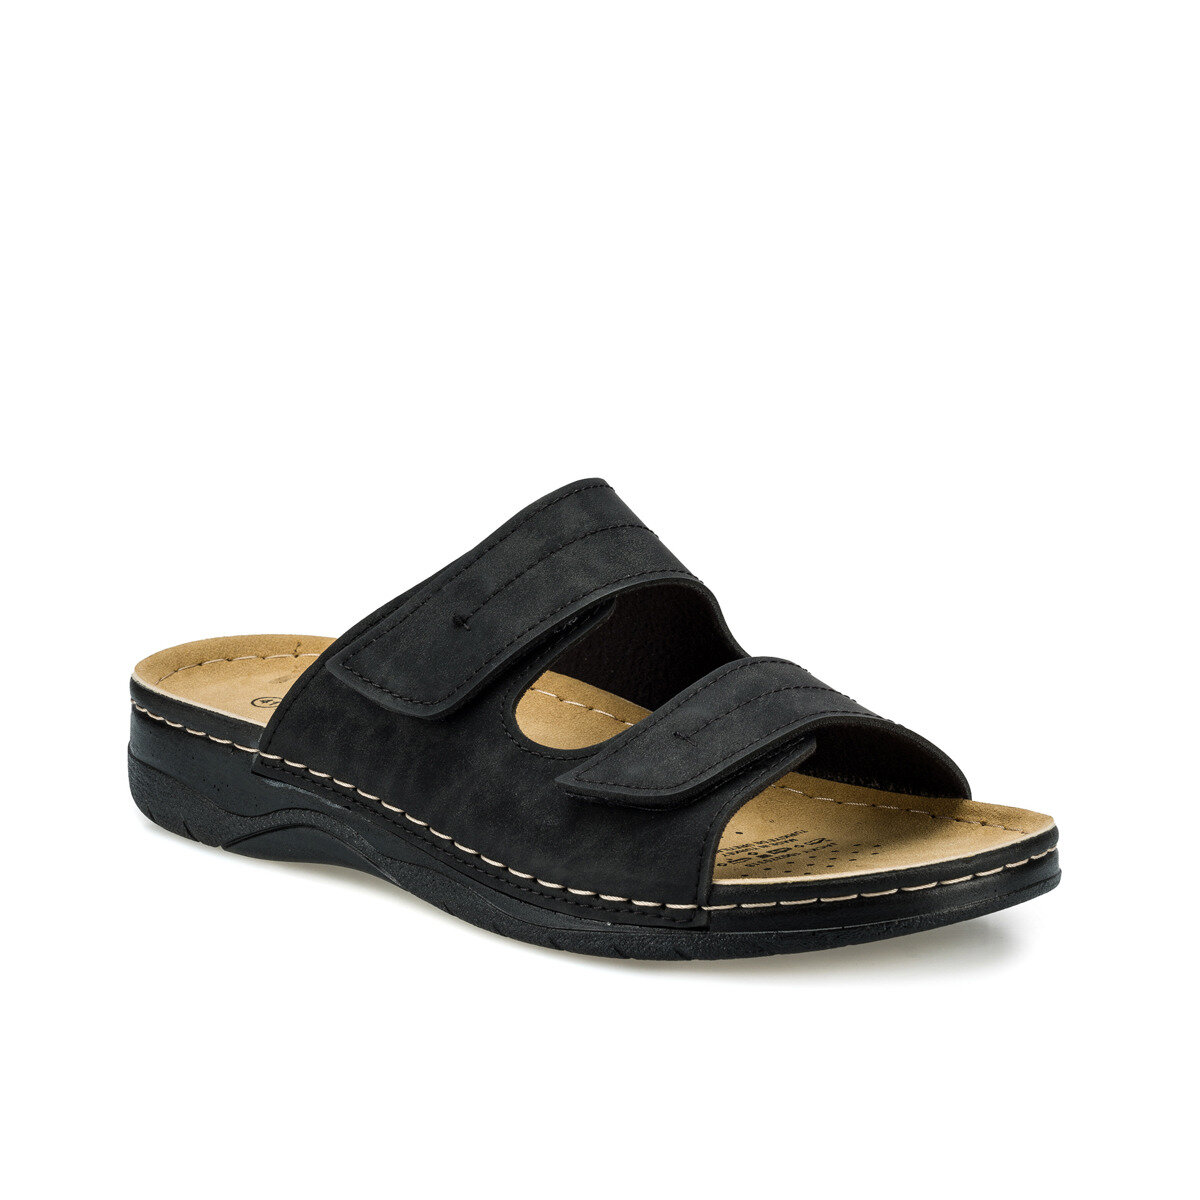 FLO JACKY Black Male Slippers KINETIX